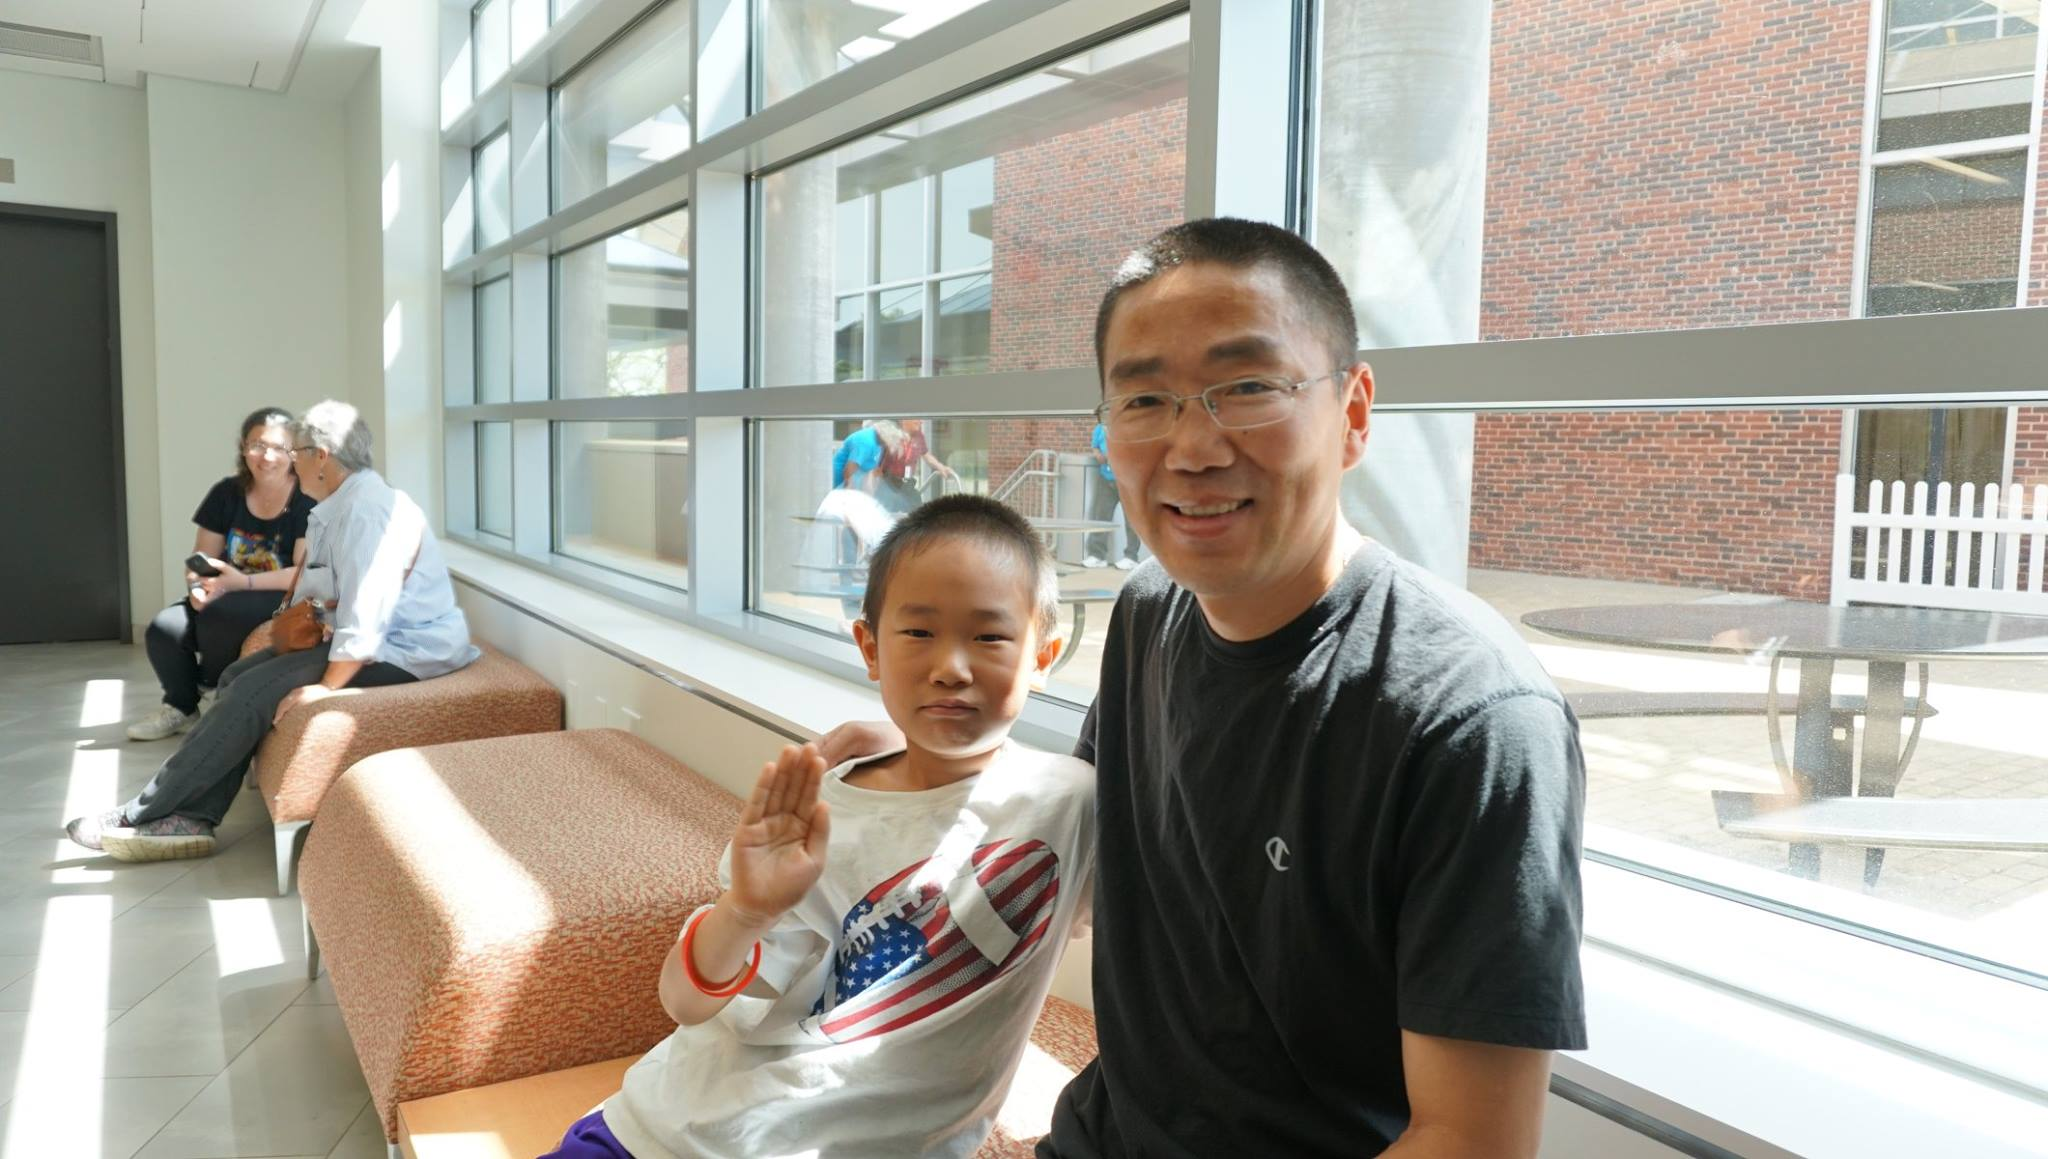 A son and father relax in the lobby of the Sports & Rec Center with several glass windows behind them.